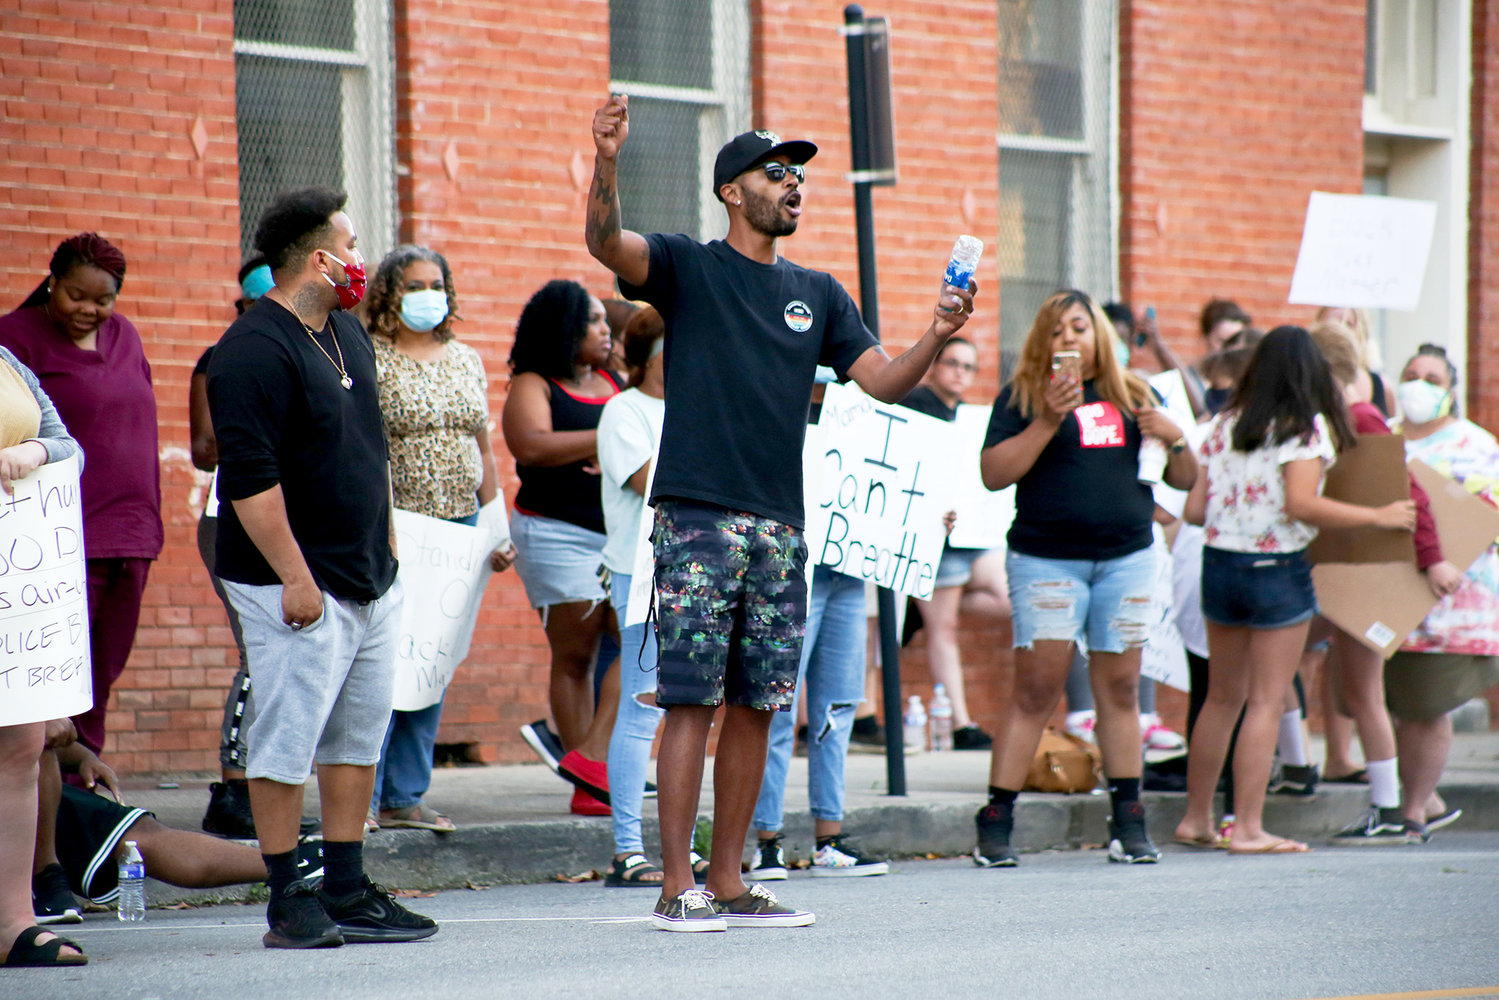 TERRENCE DAVIS speaks to CPD officers posted outside the Cleveland Police Department on Sunday during the protest.